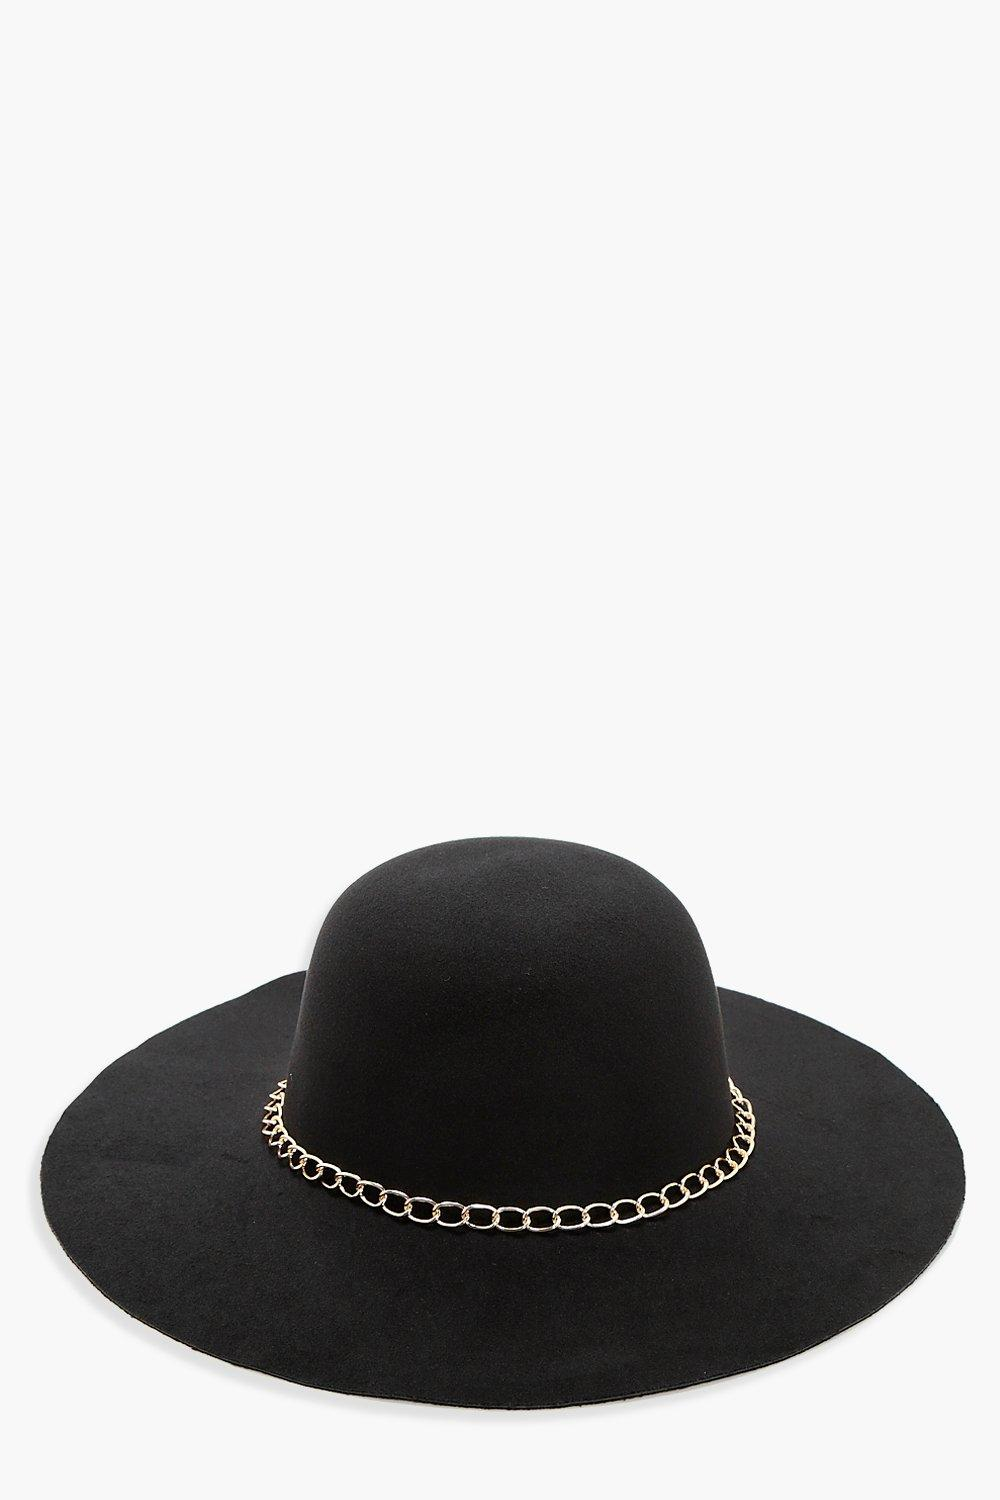 Chain Floppy Hat - black - Ellie Chain Floppy Hat